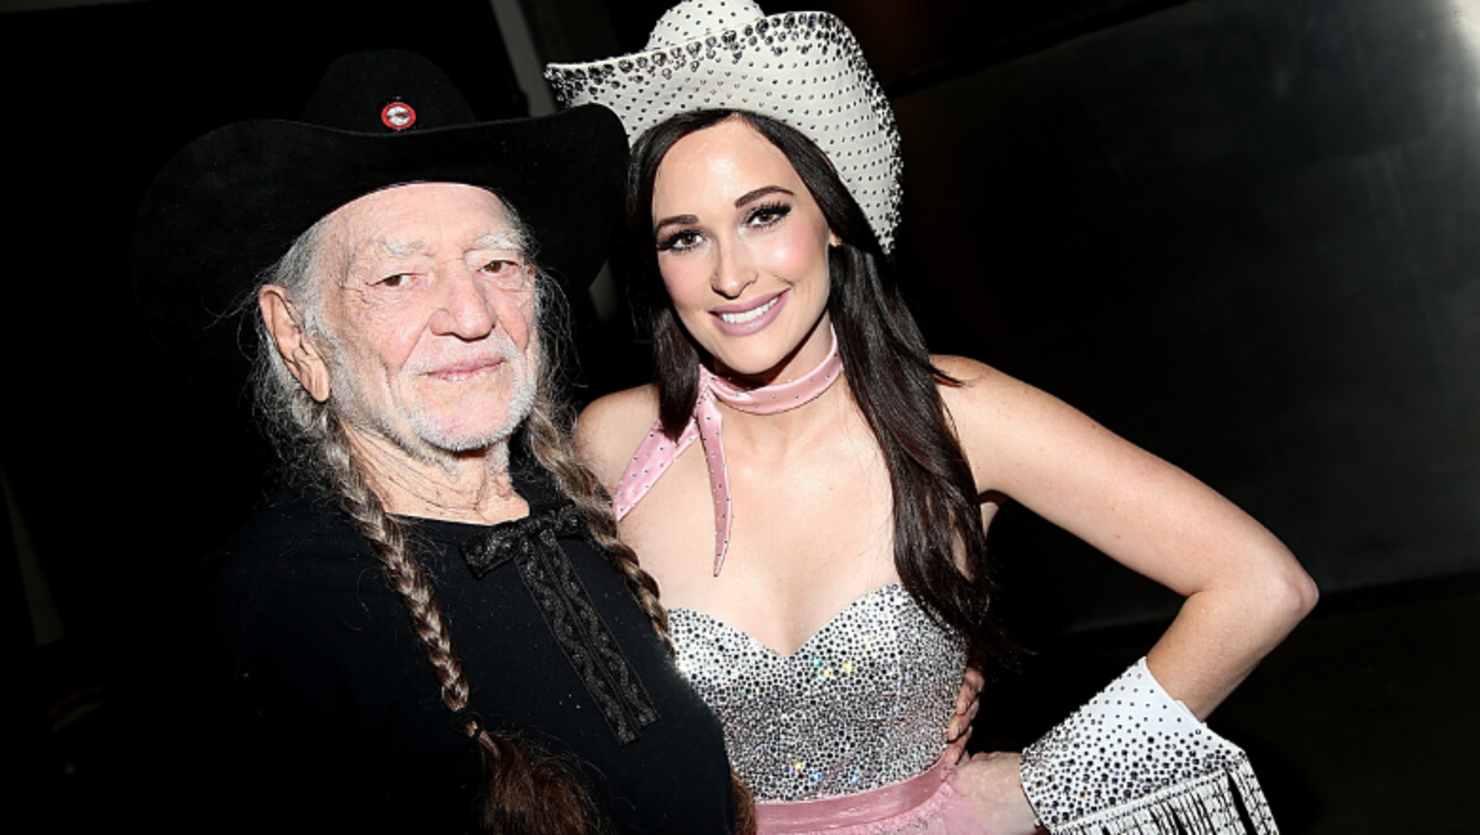 Kacey Musgraves, Willie Nelson, Garth Brooks And More To Perform CMA Awards